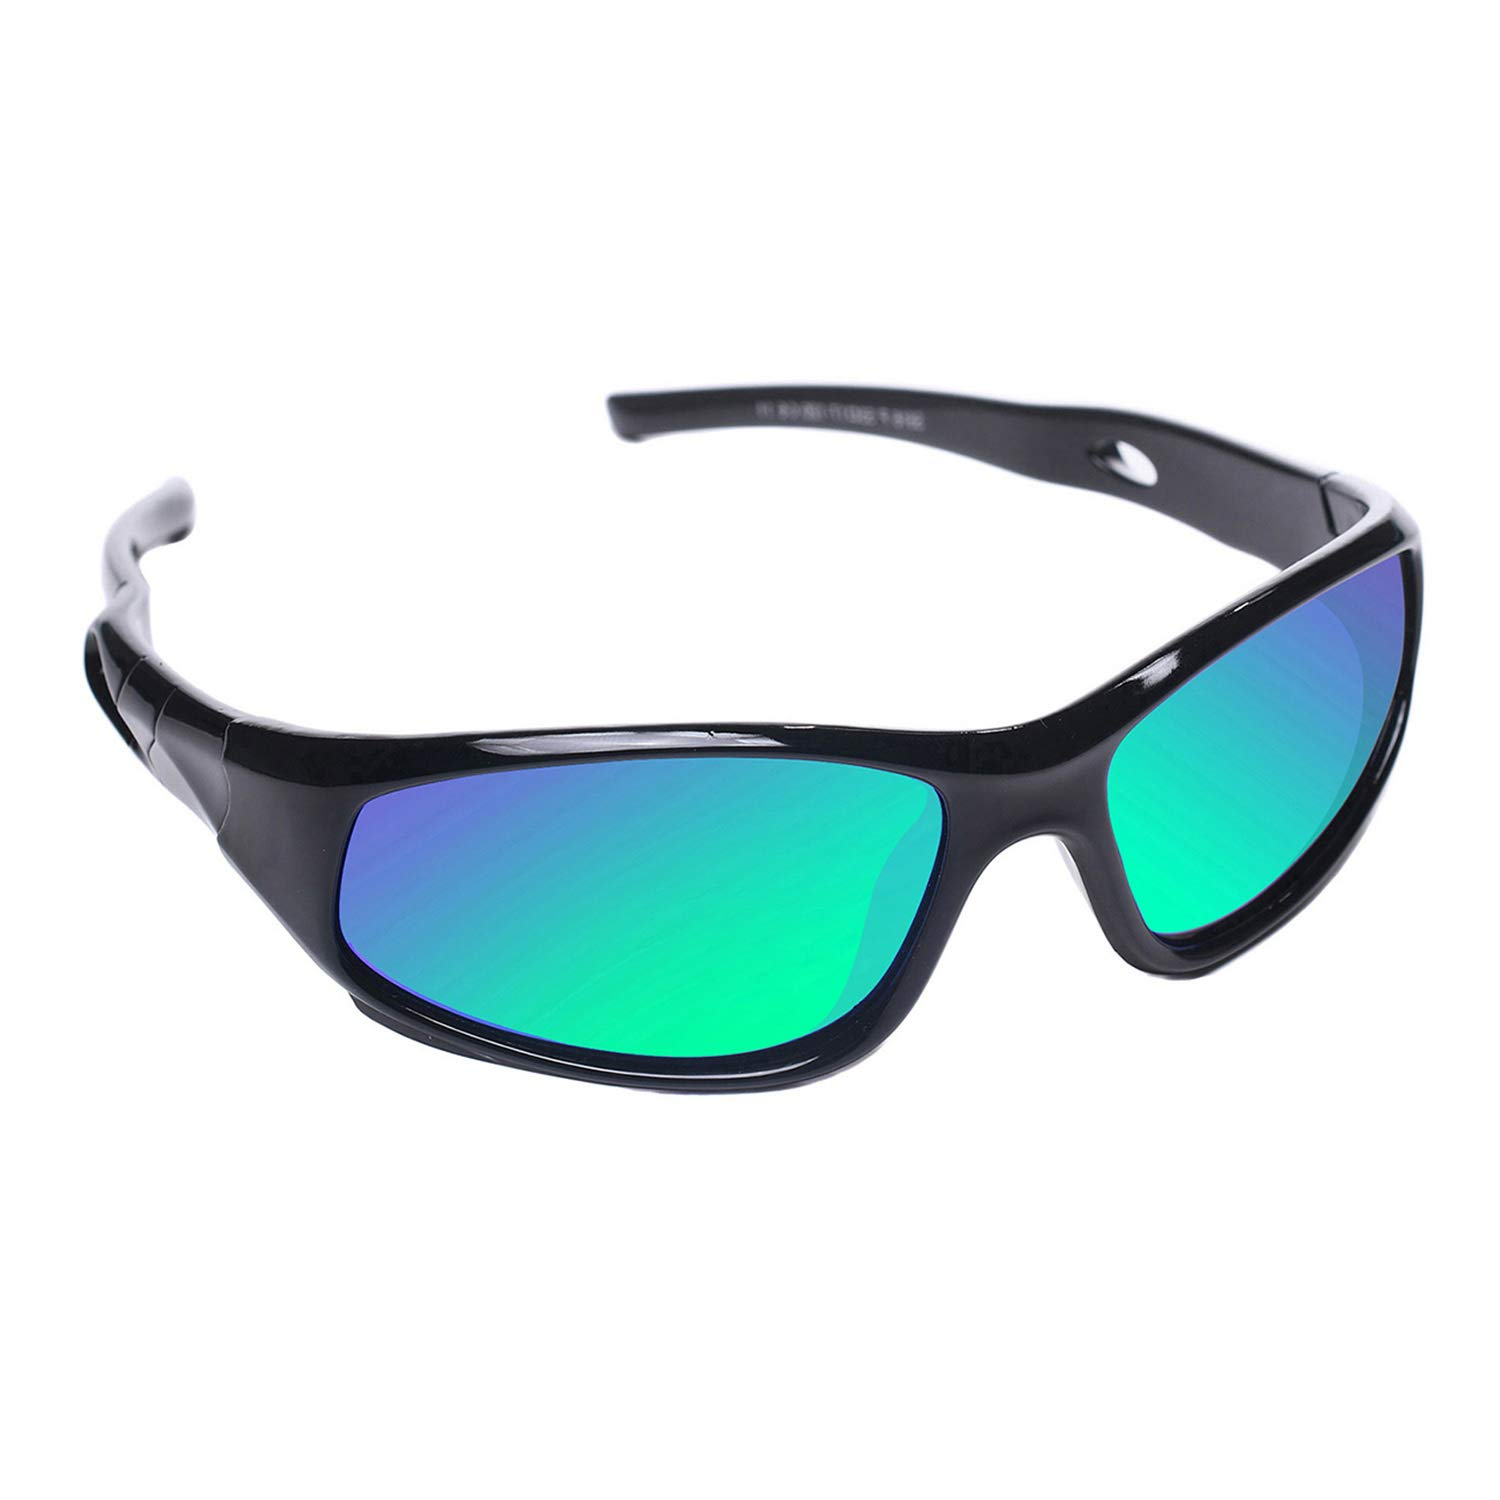 AODUOKE Sports Polarized Sunglasses For Kids Children Boys Girls Toddler With Adjustable Strap